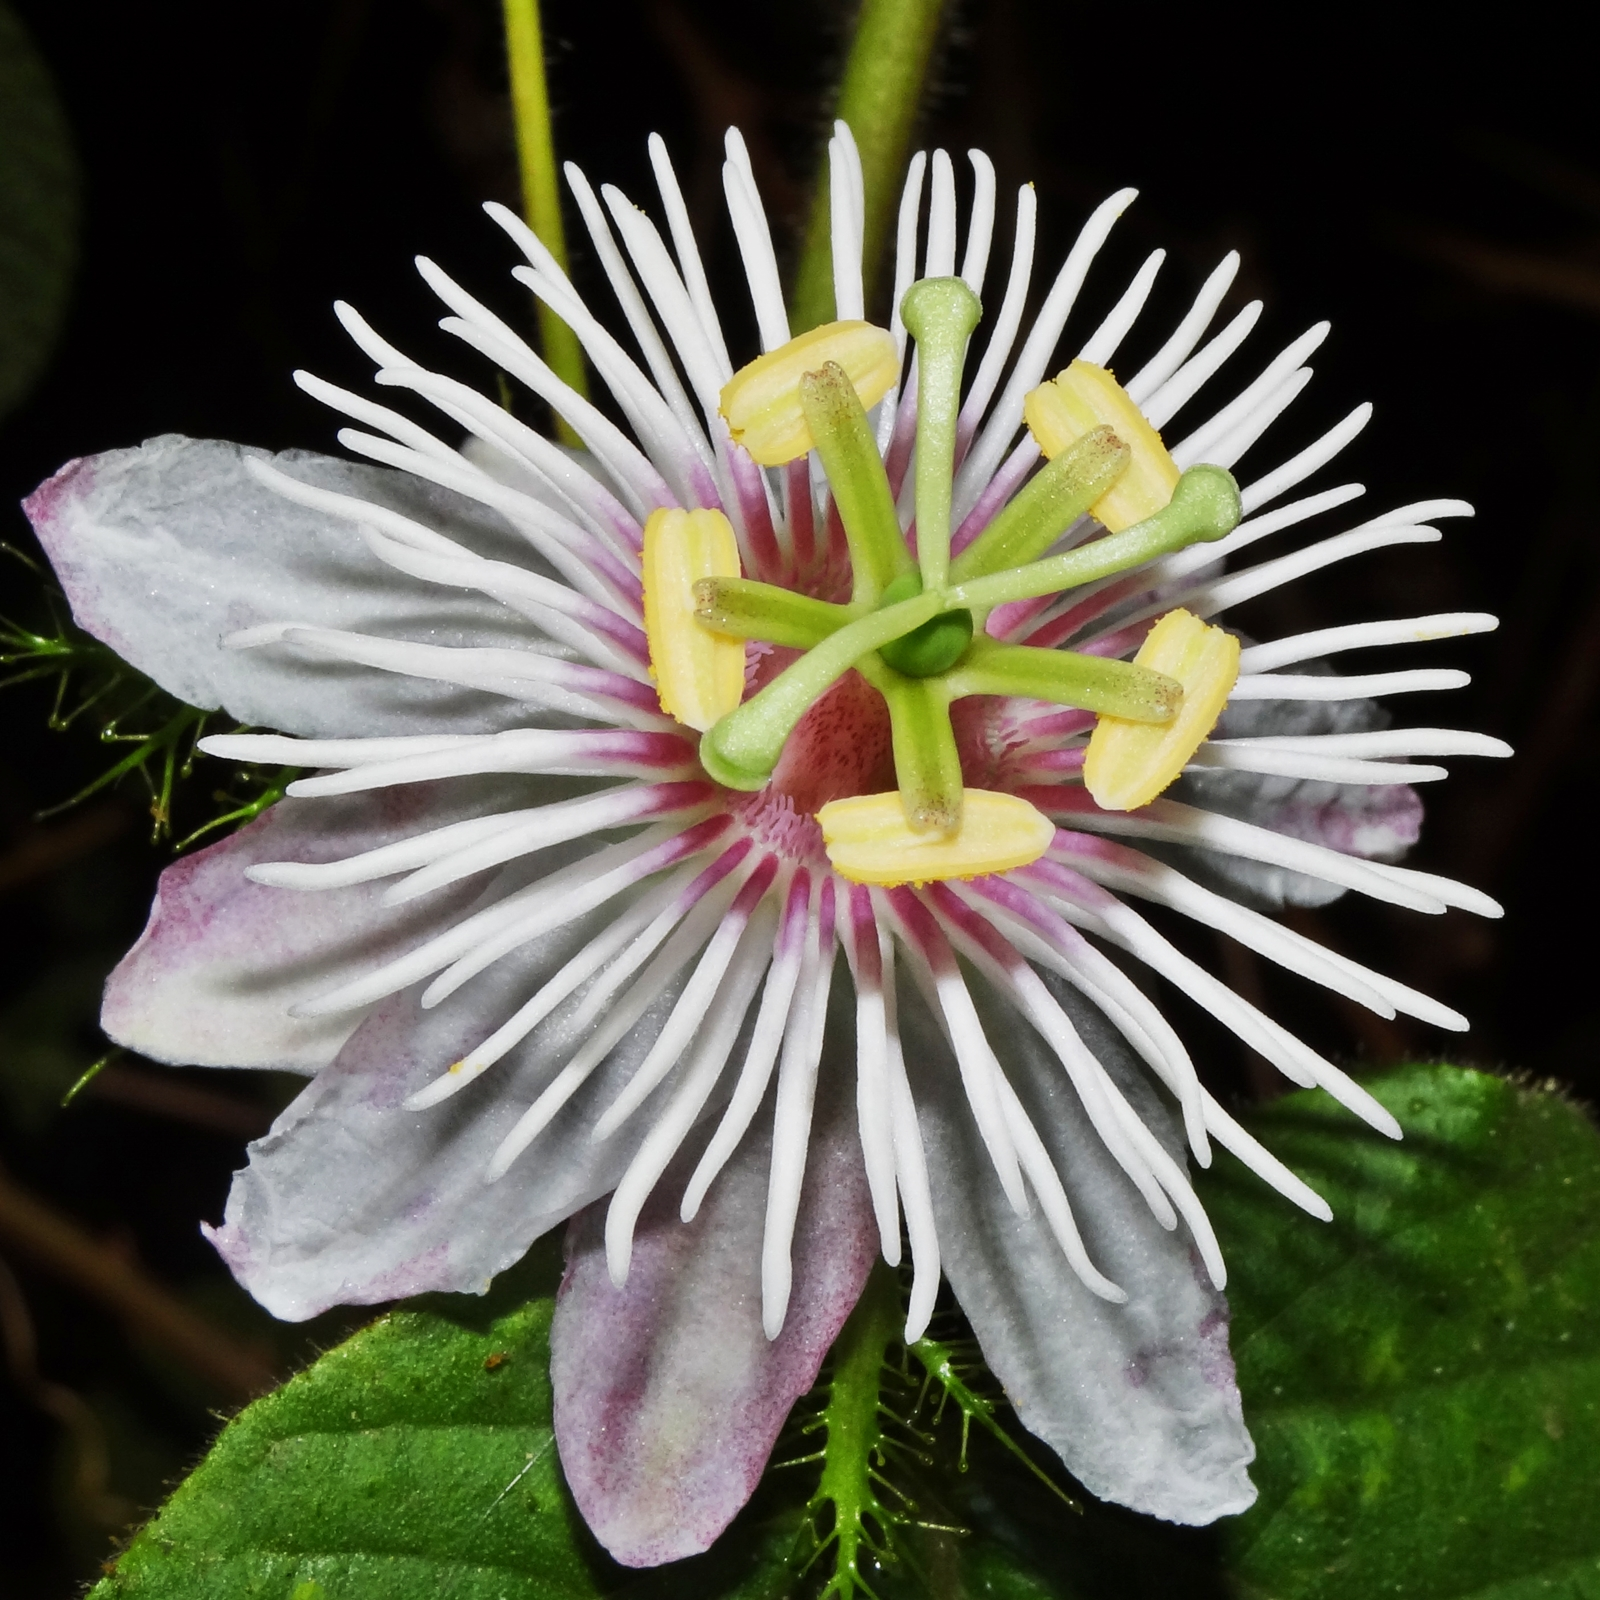 Flower detail of passion flower passiflora family flower detail of passion flower passiflora family passifloraceae in tumkur dhlflorist Images